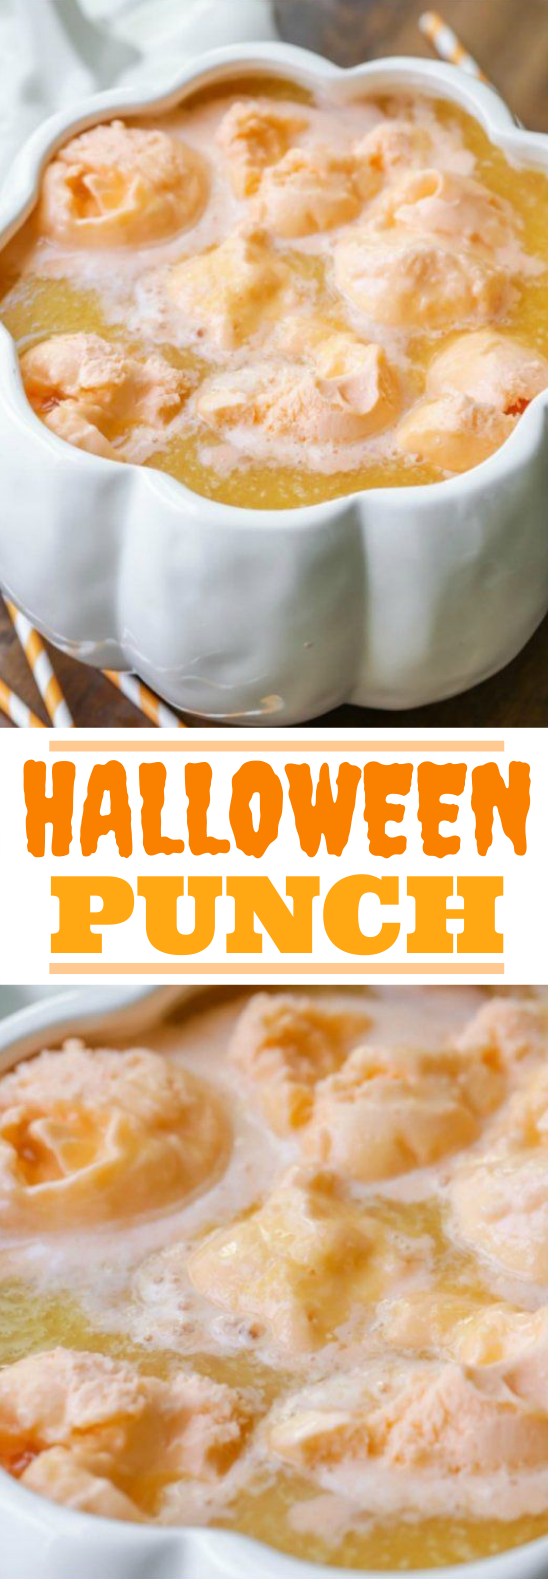 Easy Halloween Punch #drinks #party #halloween #kidfriendly #punch